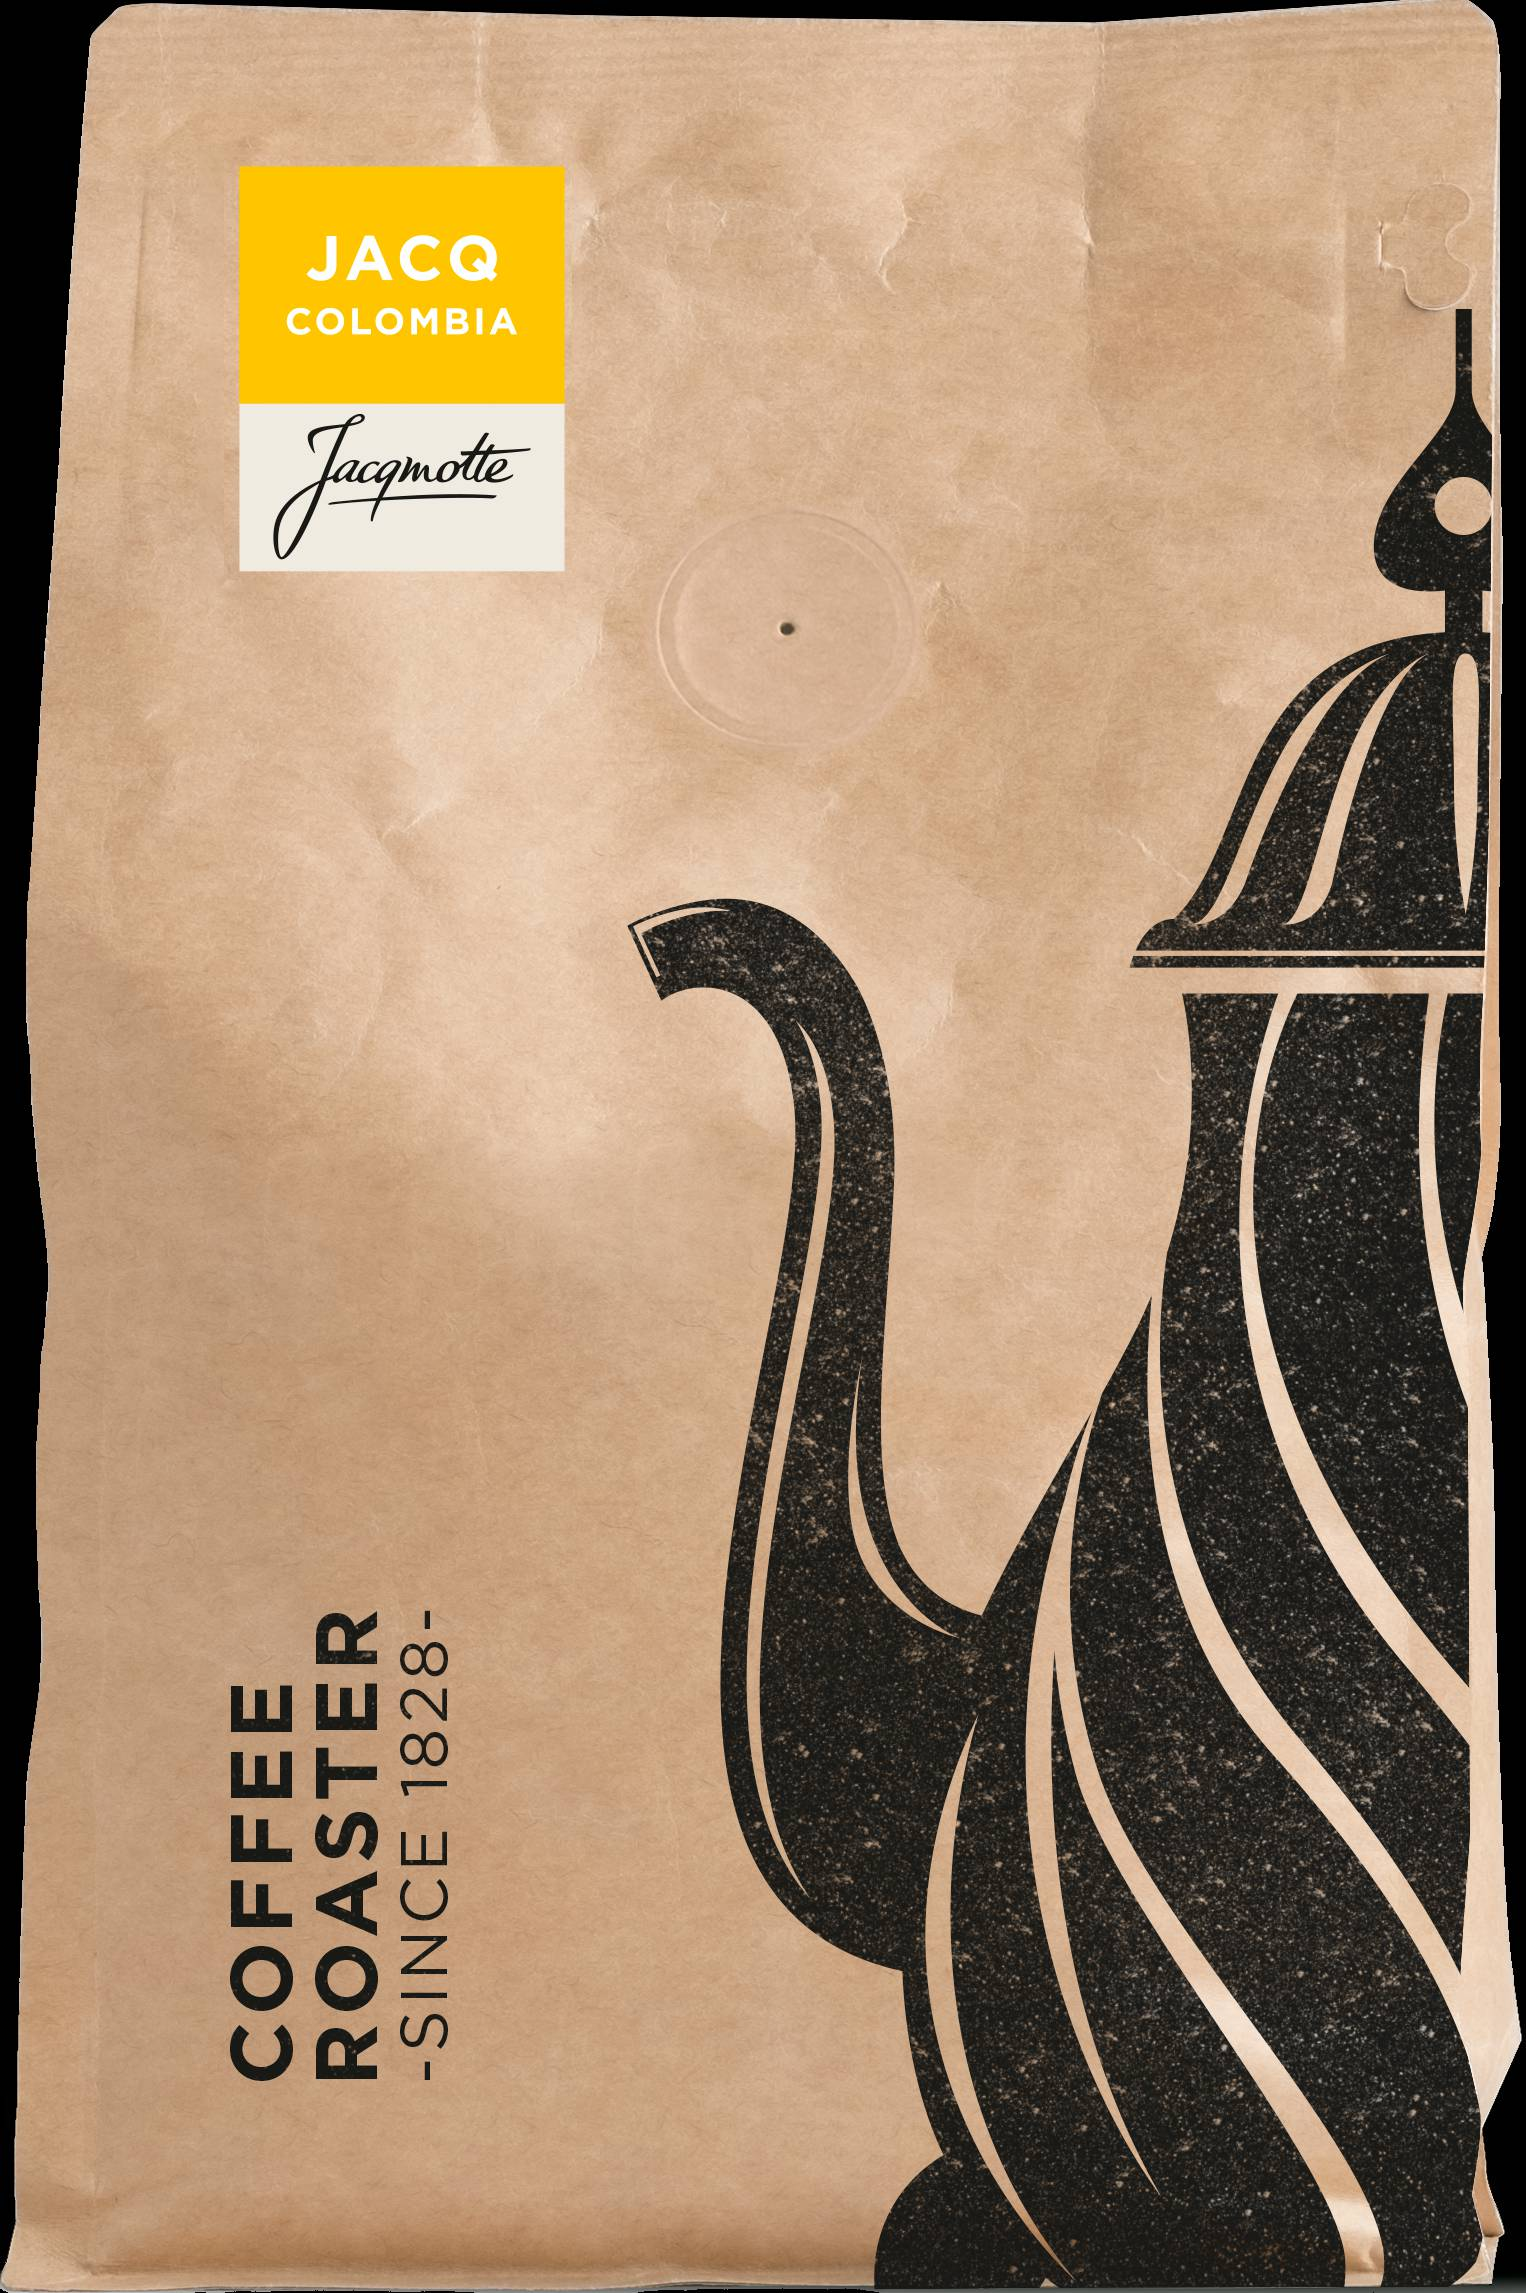 JACQ Colombia - Tolima koffie